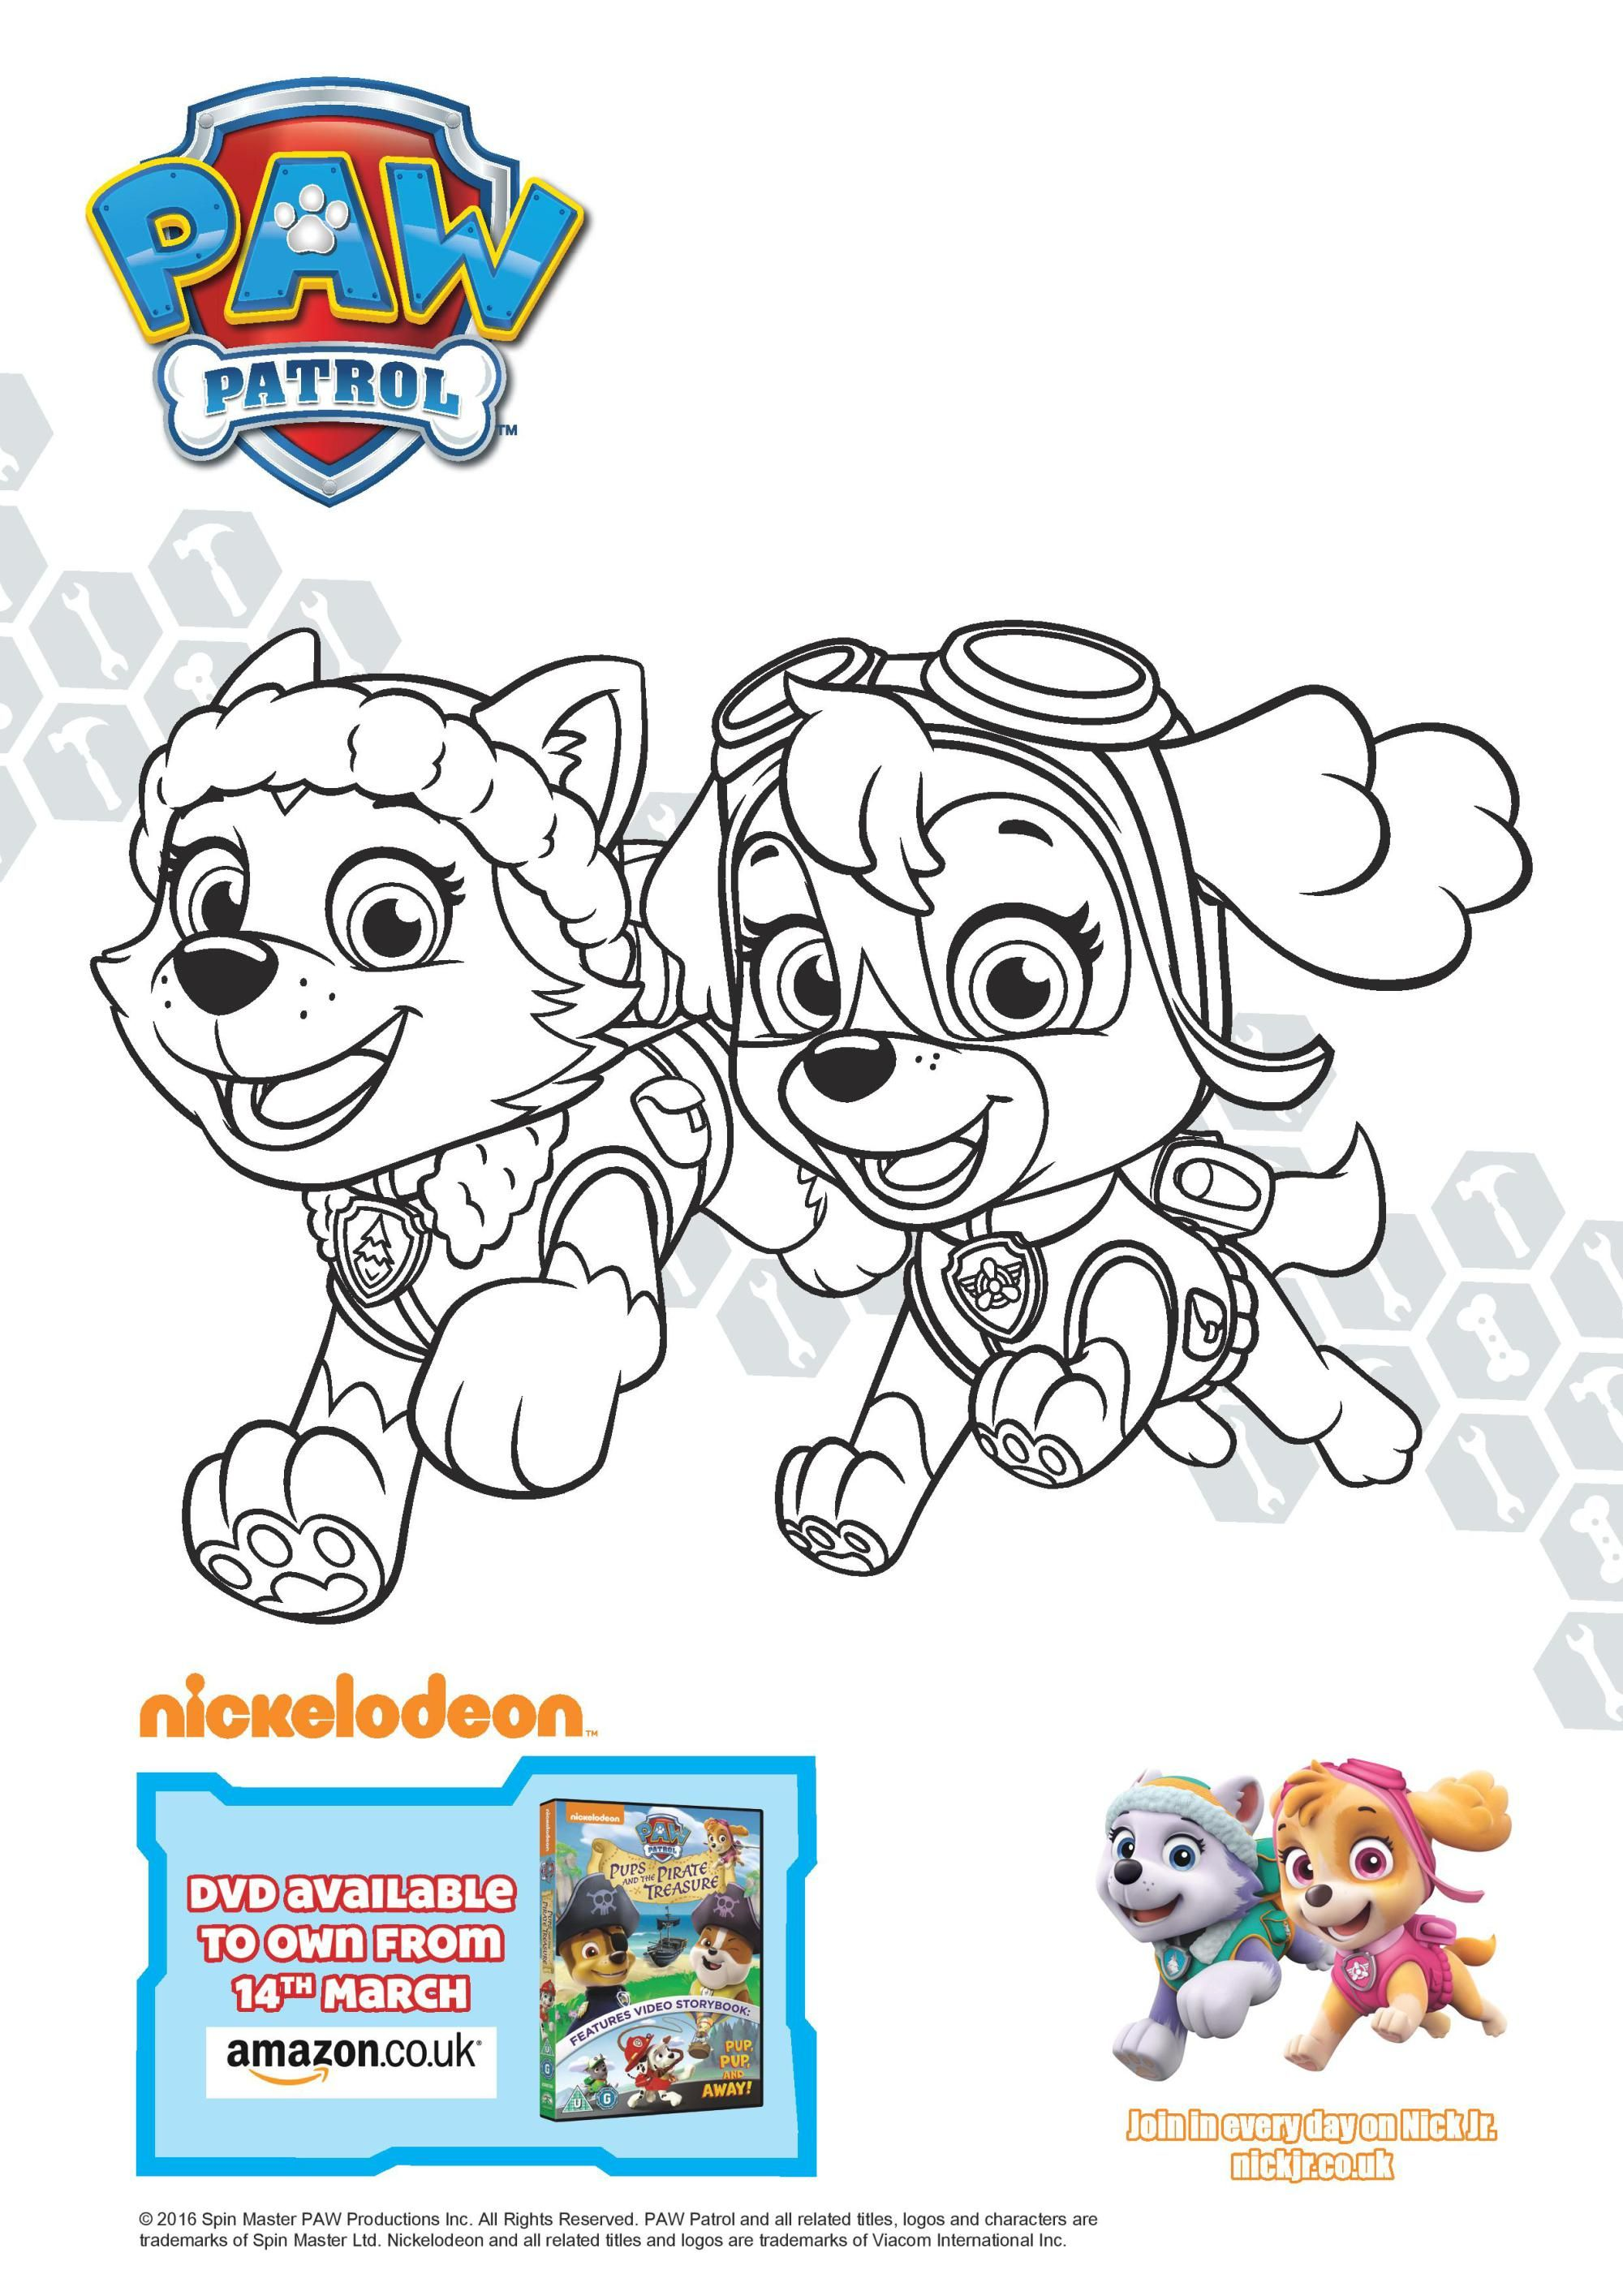 Paw Patrol Pups And The Pirate Treasure Colouring Page Printables And Dvd Giveaway In The Playroom Paw Patrol Coloring Paw Patrol Coloring Pages Paw Patrol Pups